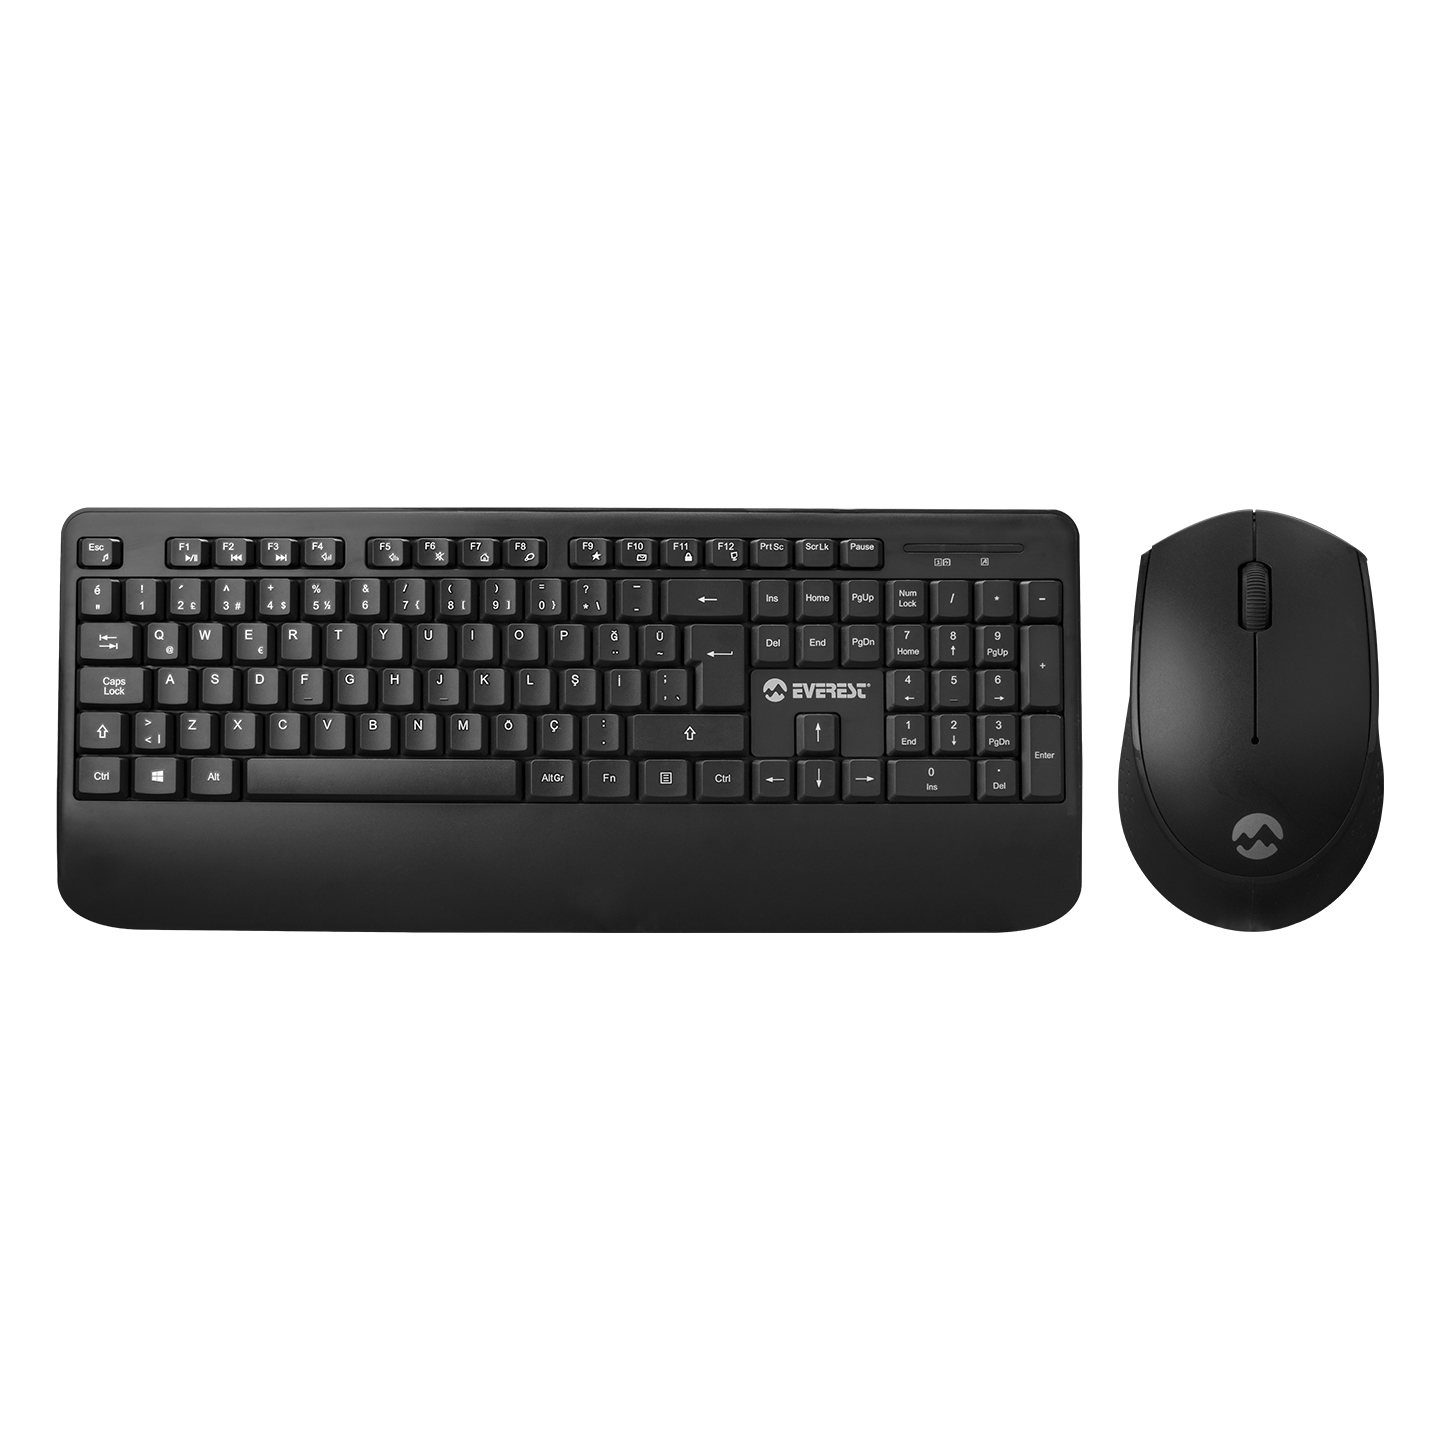 Everest KM-6176 OFFICAL Siyah Kablosuz Combo Q Multimedia Klavye + Mouse Set